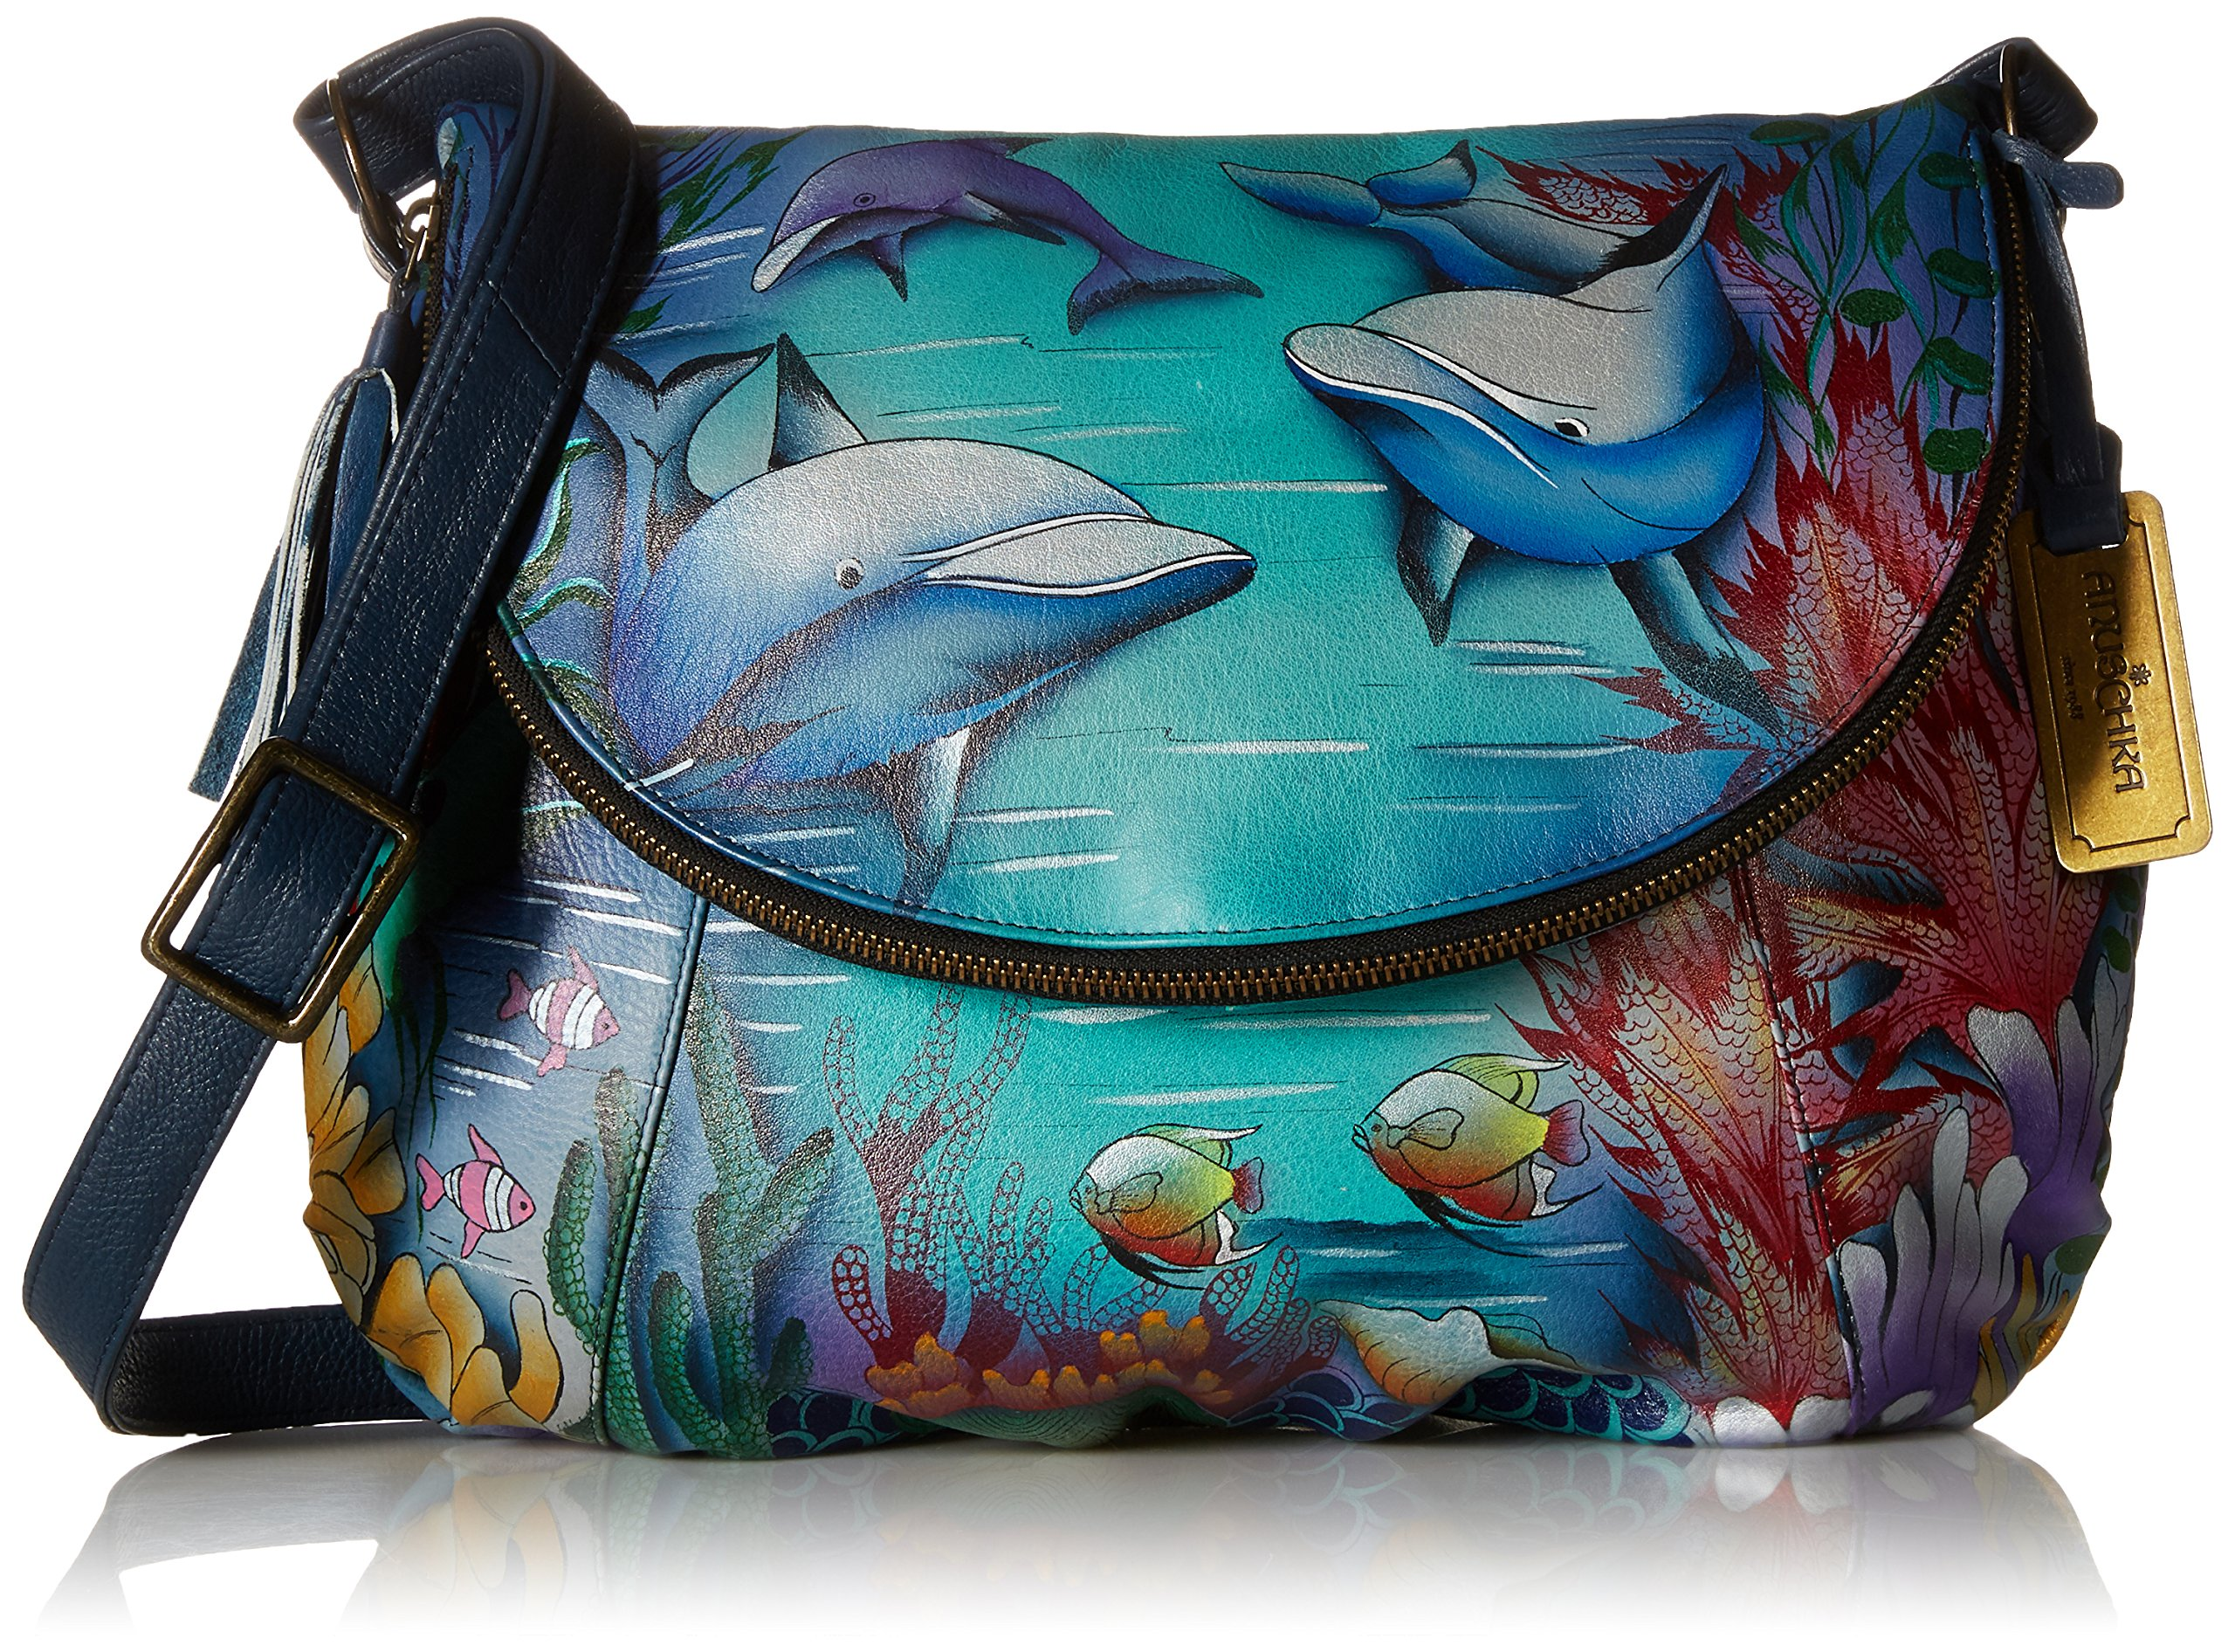 Anuschka Large Flap-Over Convertibledolphin World, Dolphin World by ANUSCHKA (Image #1)